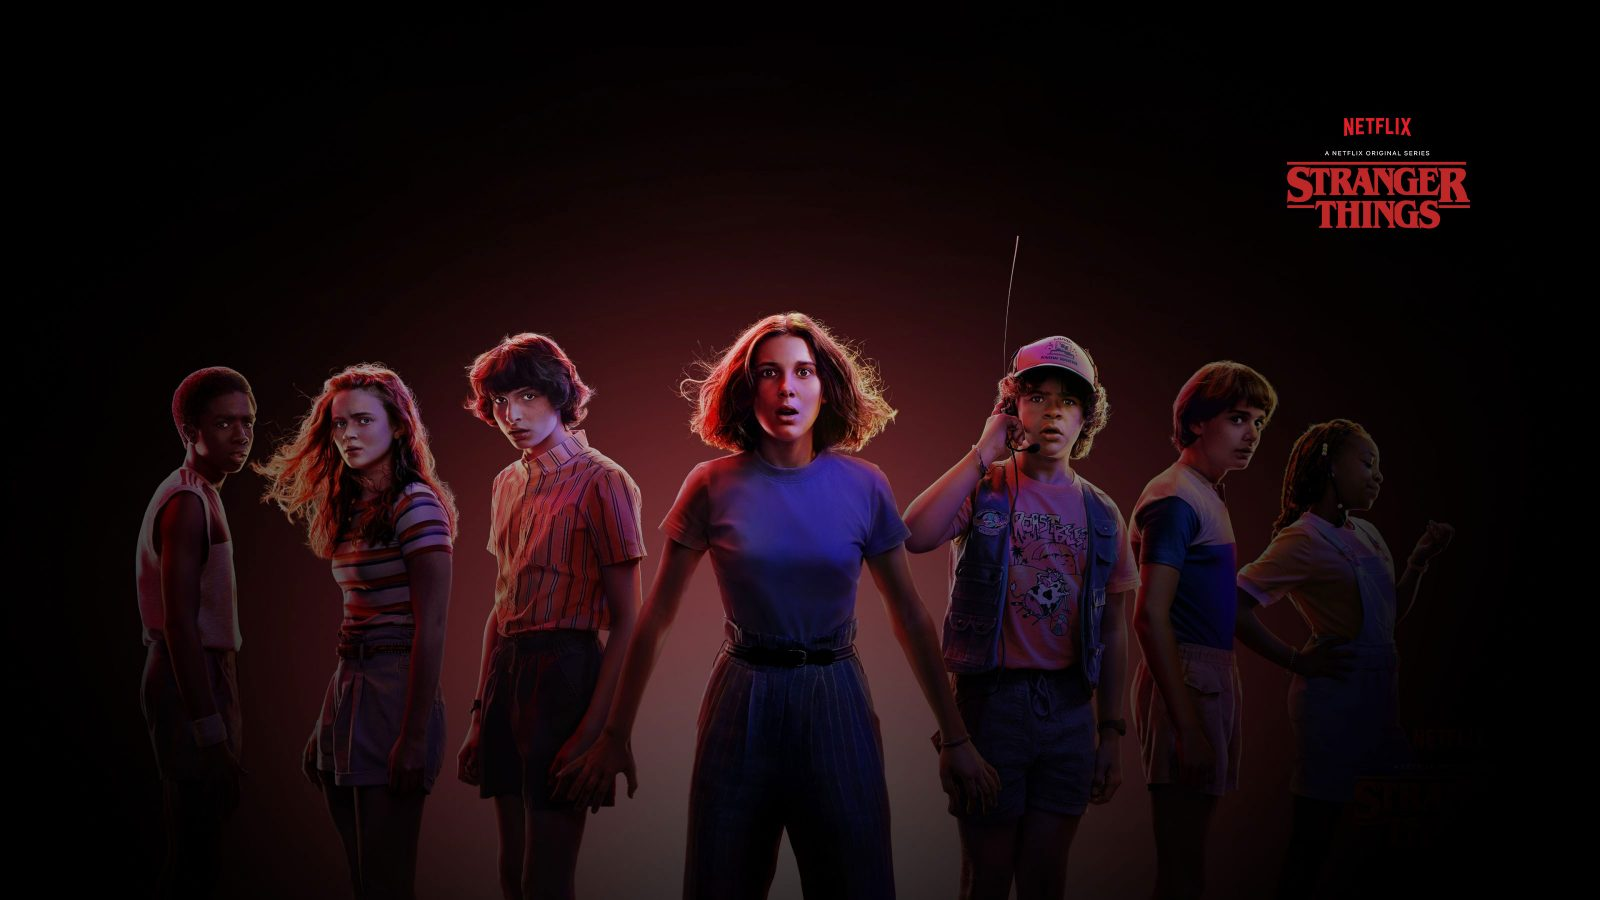 Stranger Things Season 4 Release Date, Story, Cast and